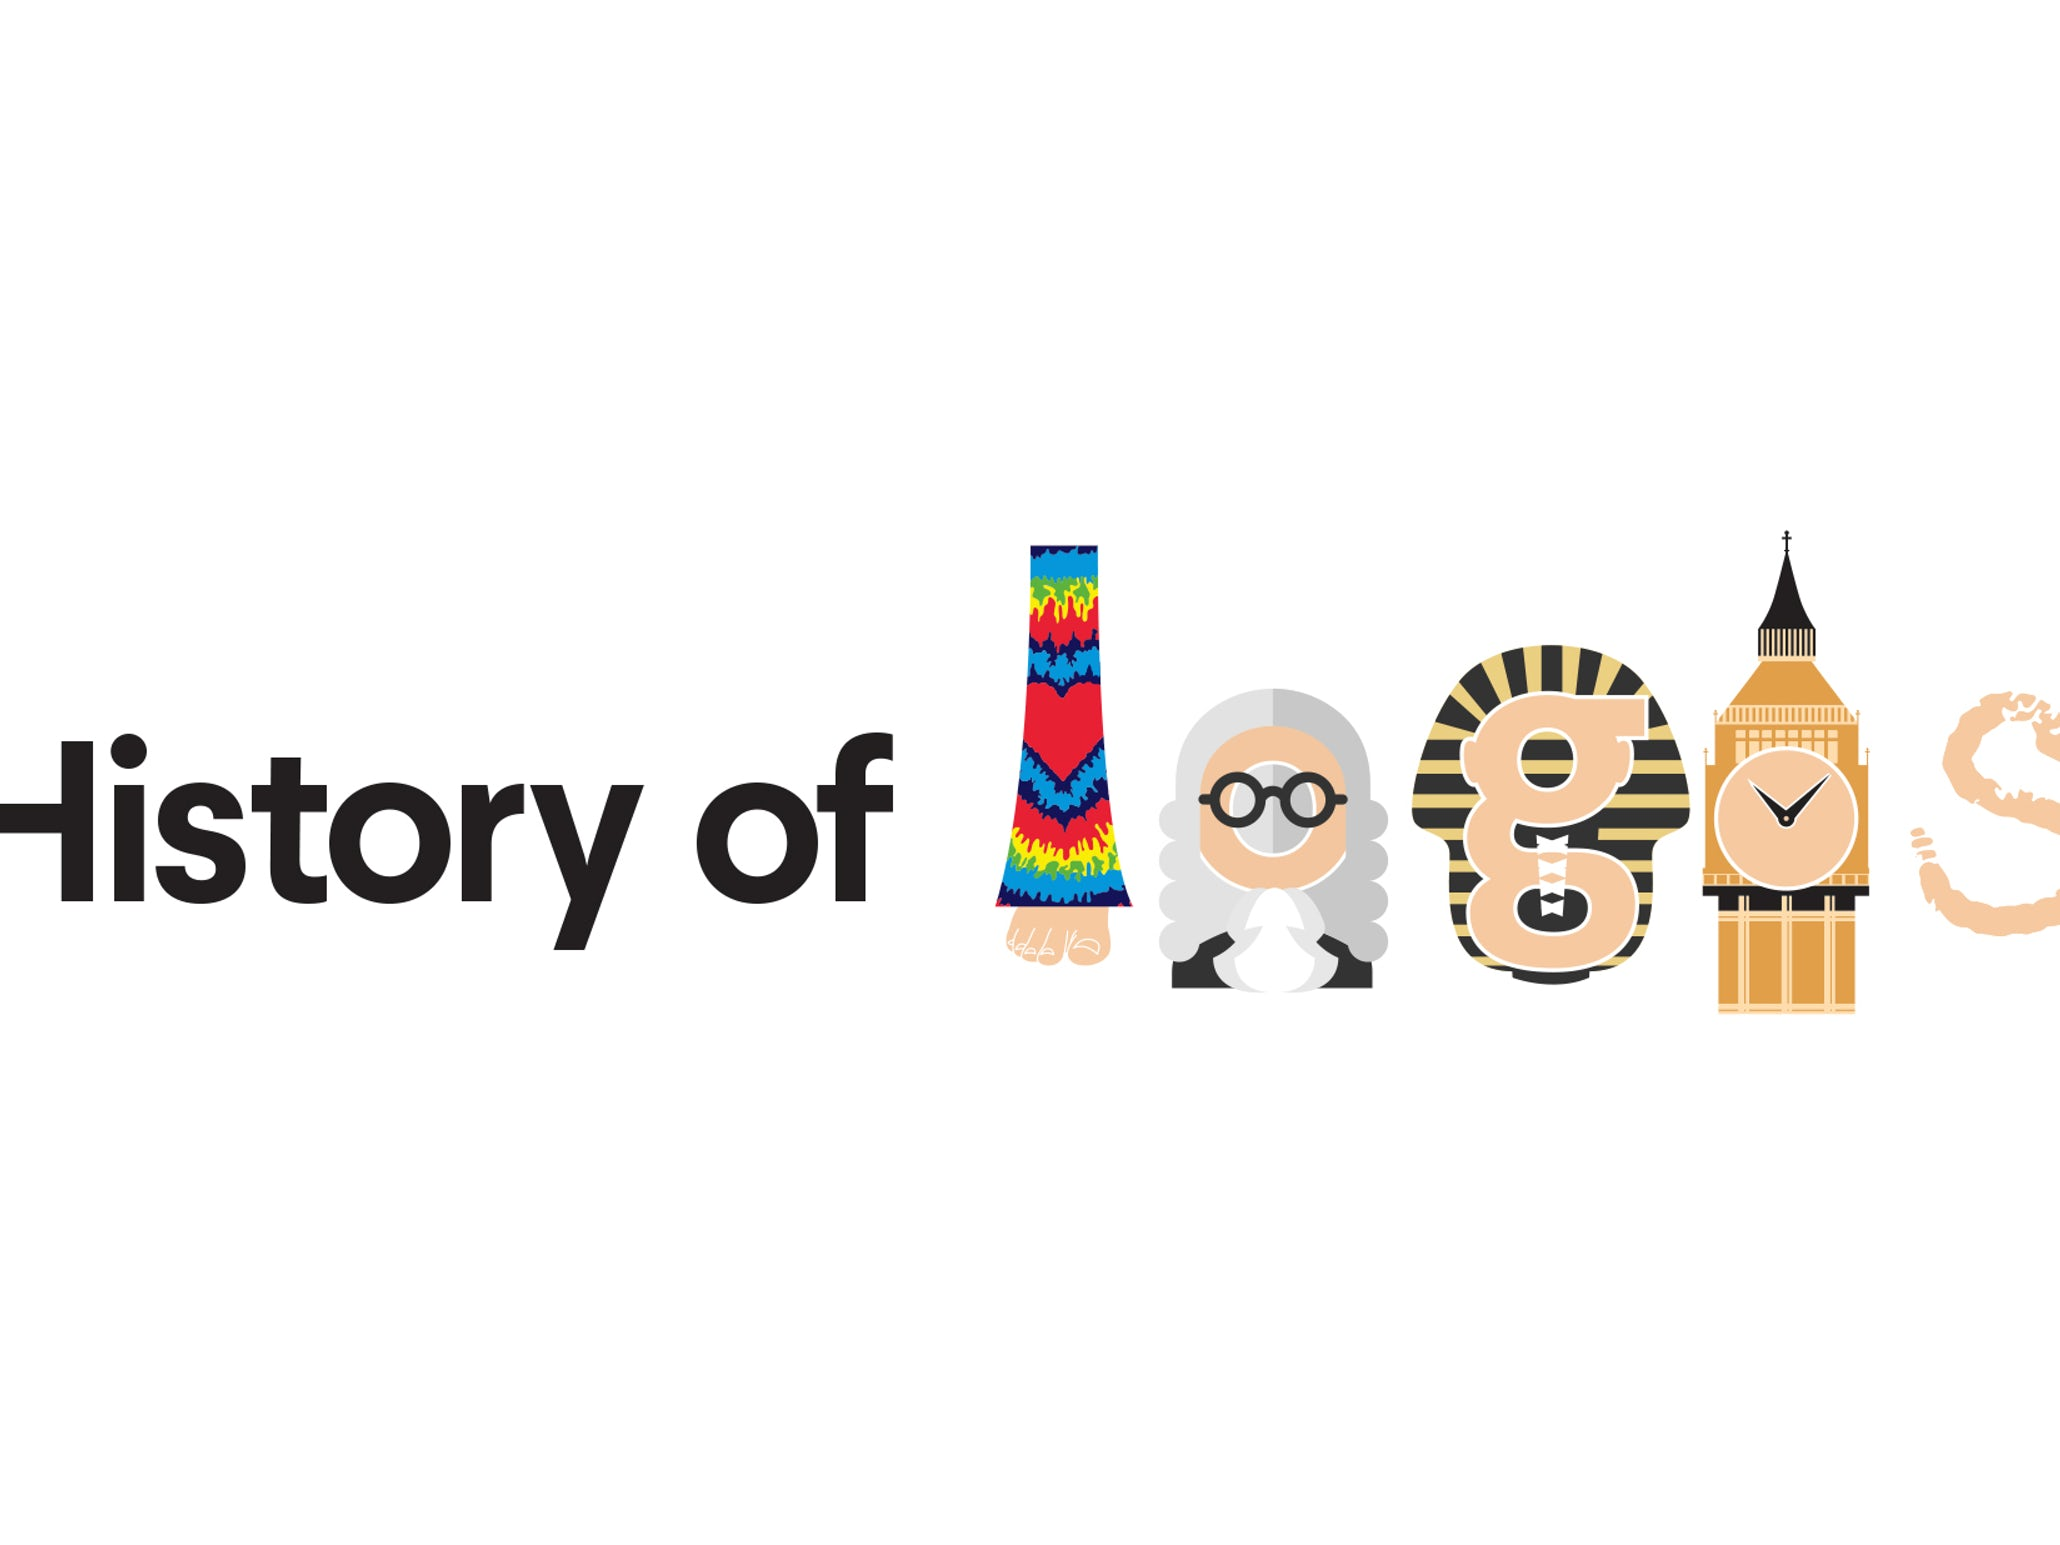 The history of logos - 99designs